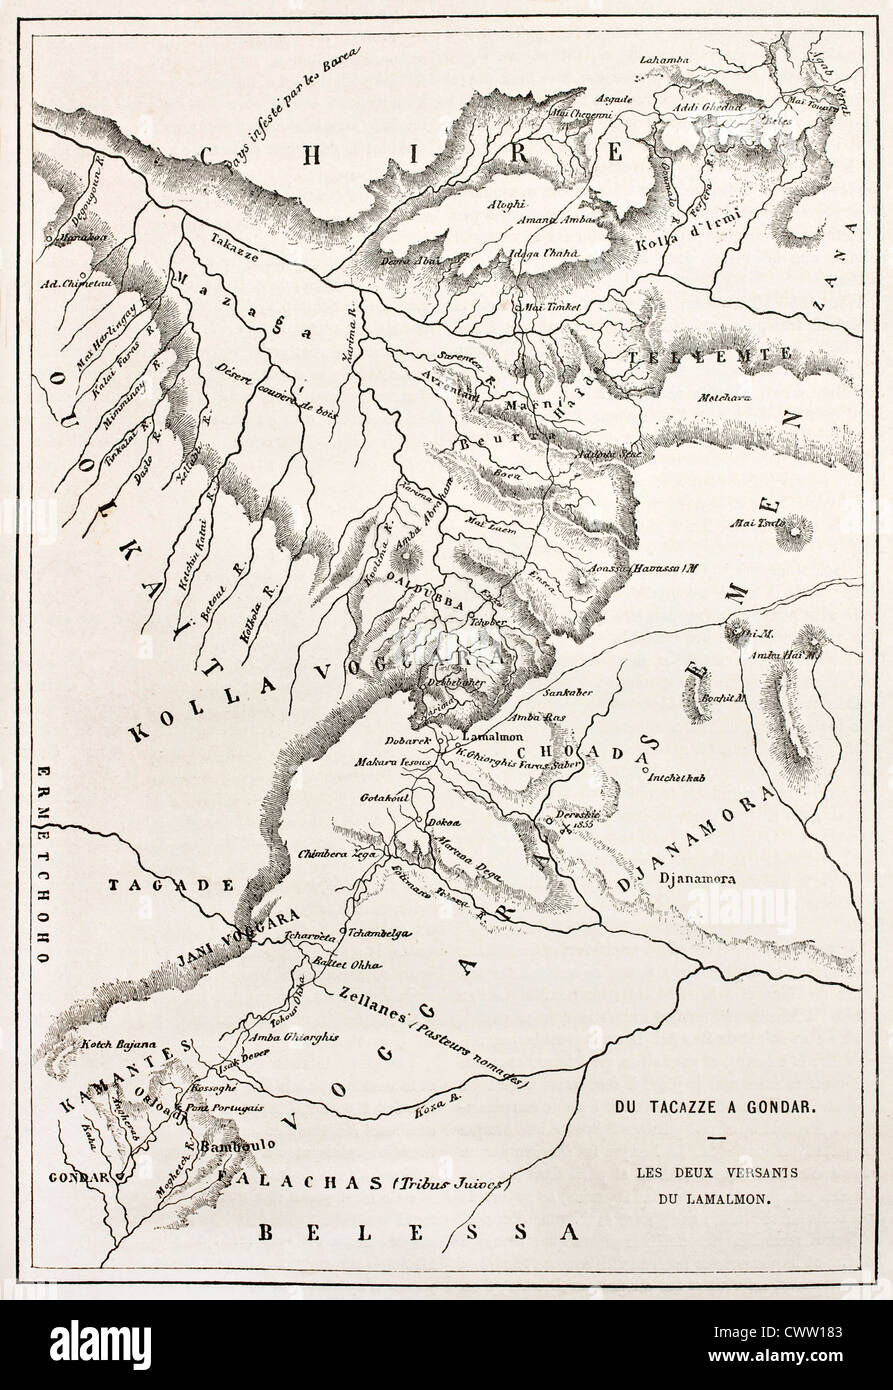 Ethiopia Old Map From Gondar To Takeze River Stock Photo Royalty - Gondar map